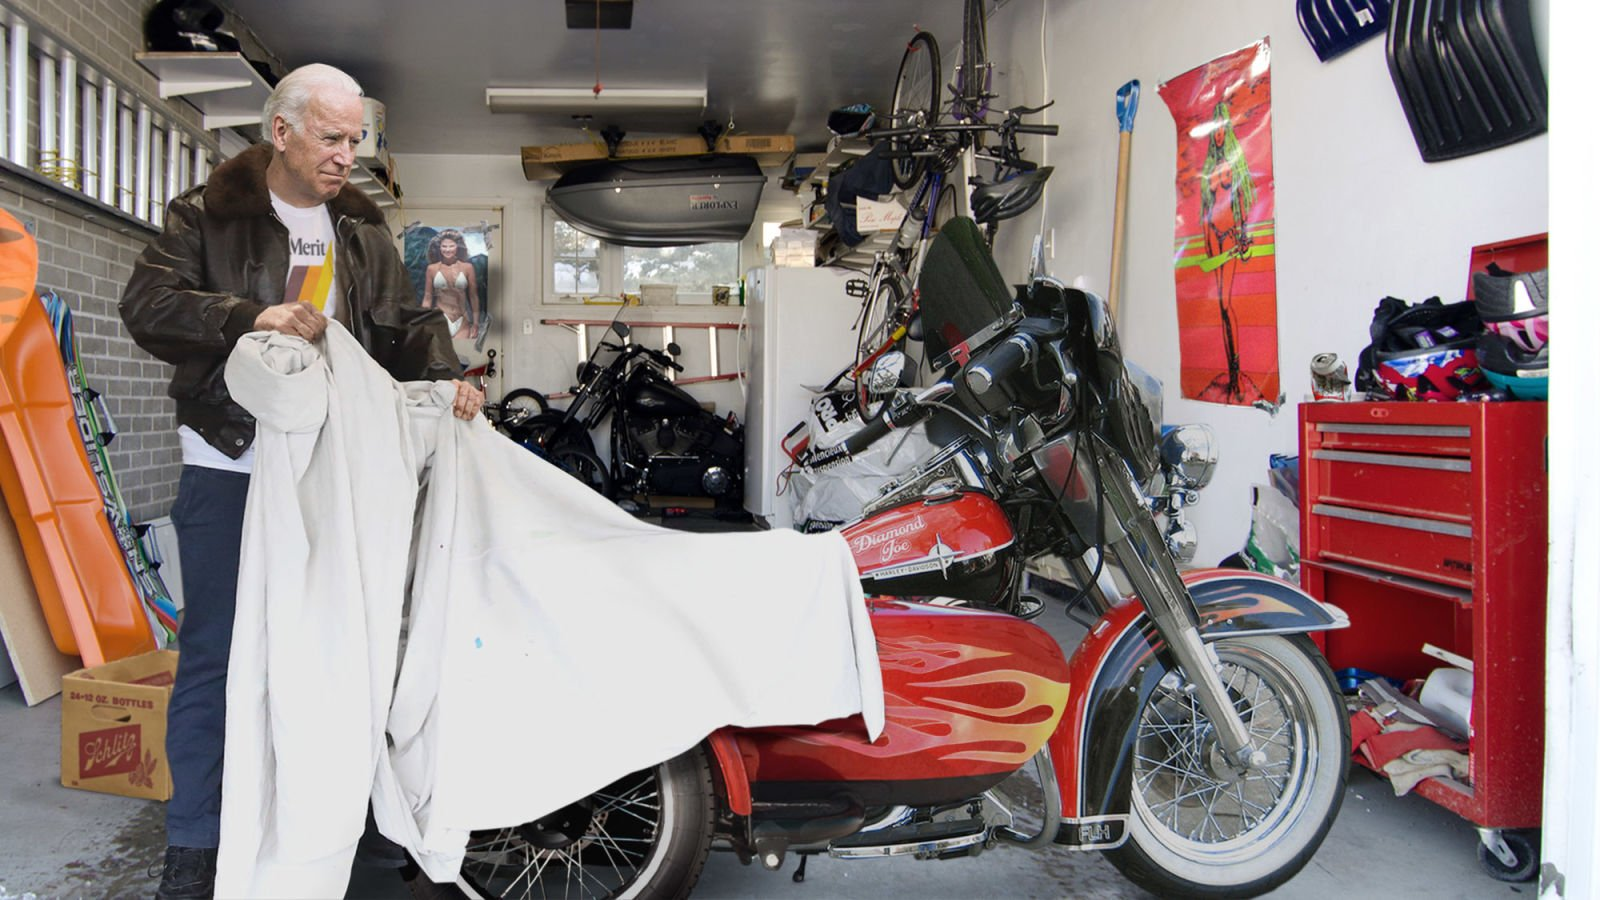 Biden Pulls Off Dusty Tarp Covering Old Campaign Motorcycle https://t.co/NF9dILxdgy https://t.co/MNnO5dOfFo